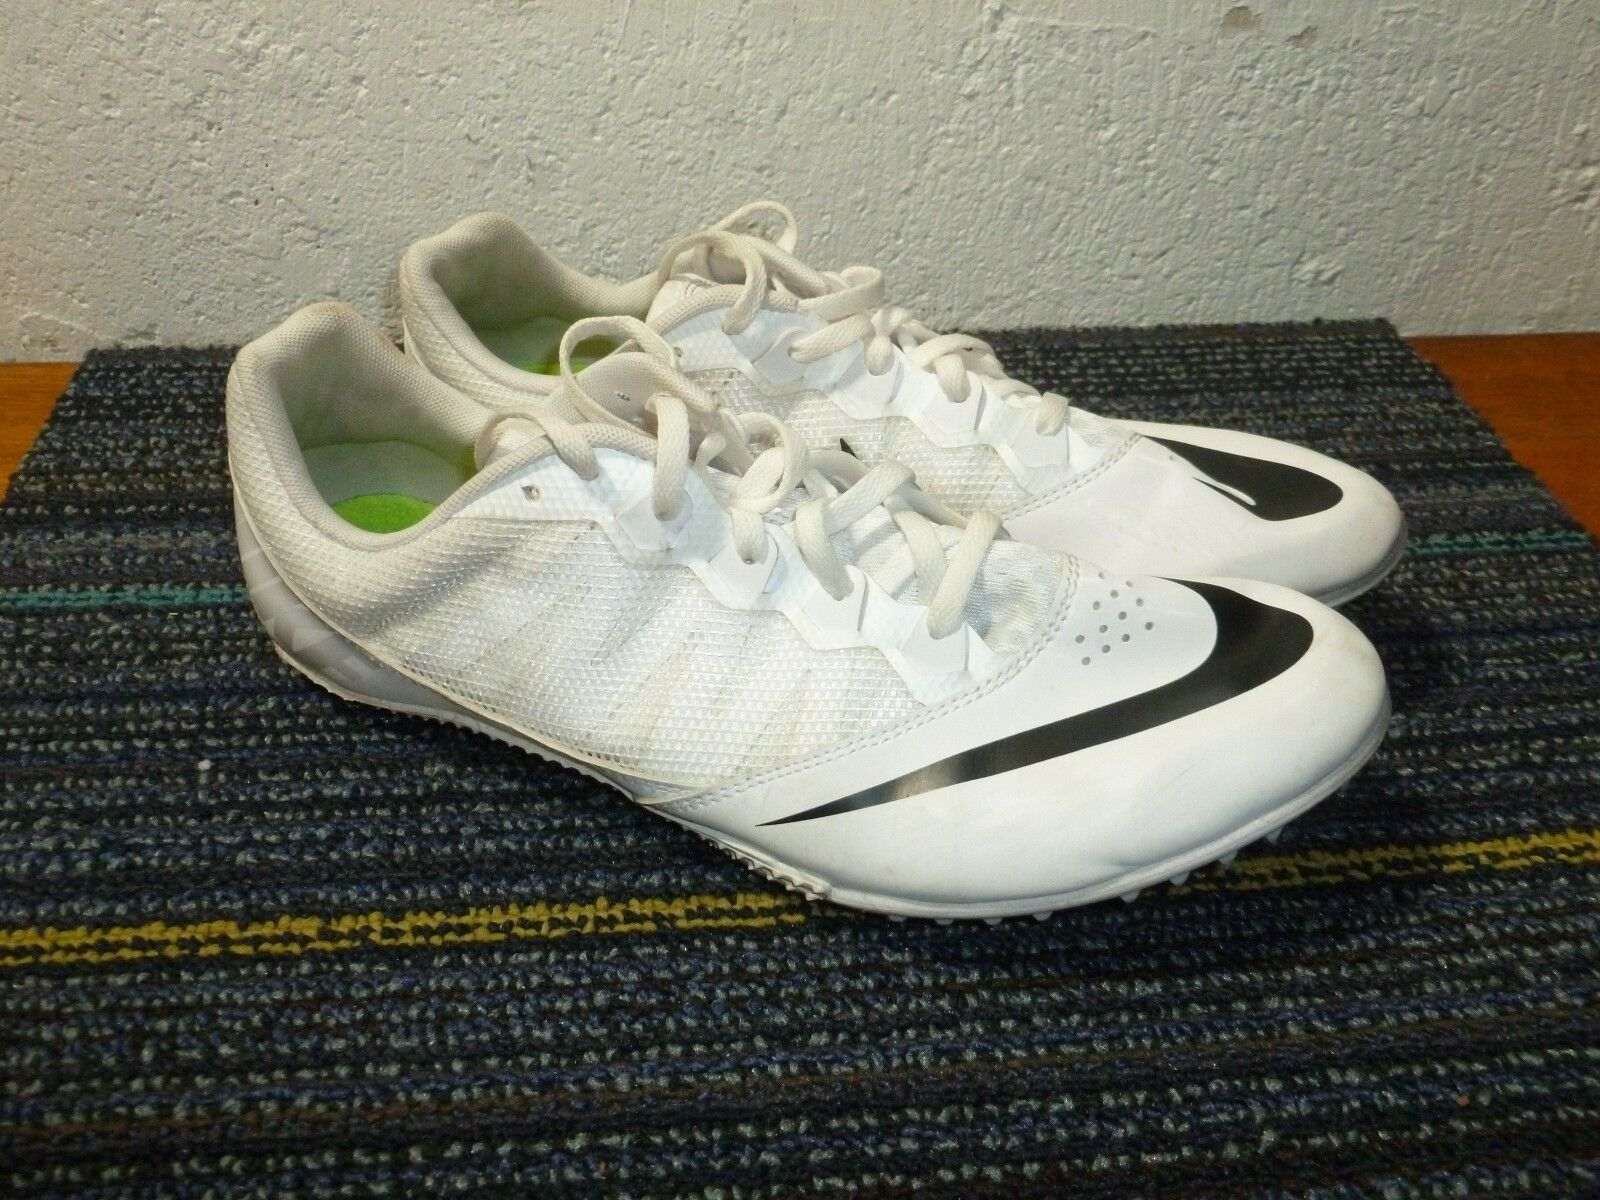 Nike Track Cleats Field White Men's Comfortable  Brand discount